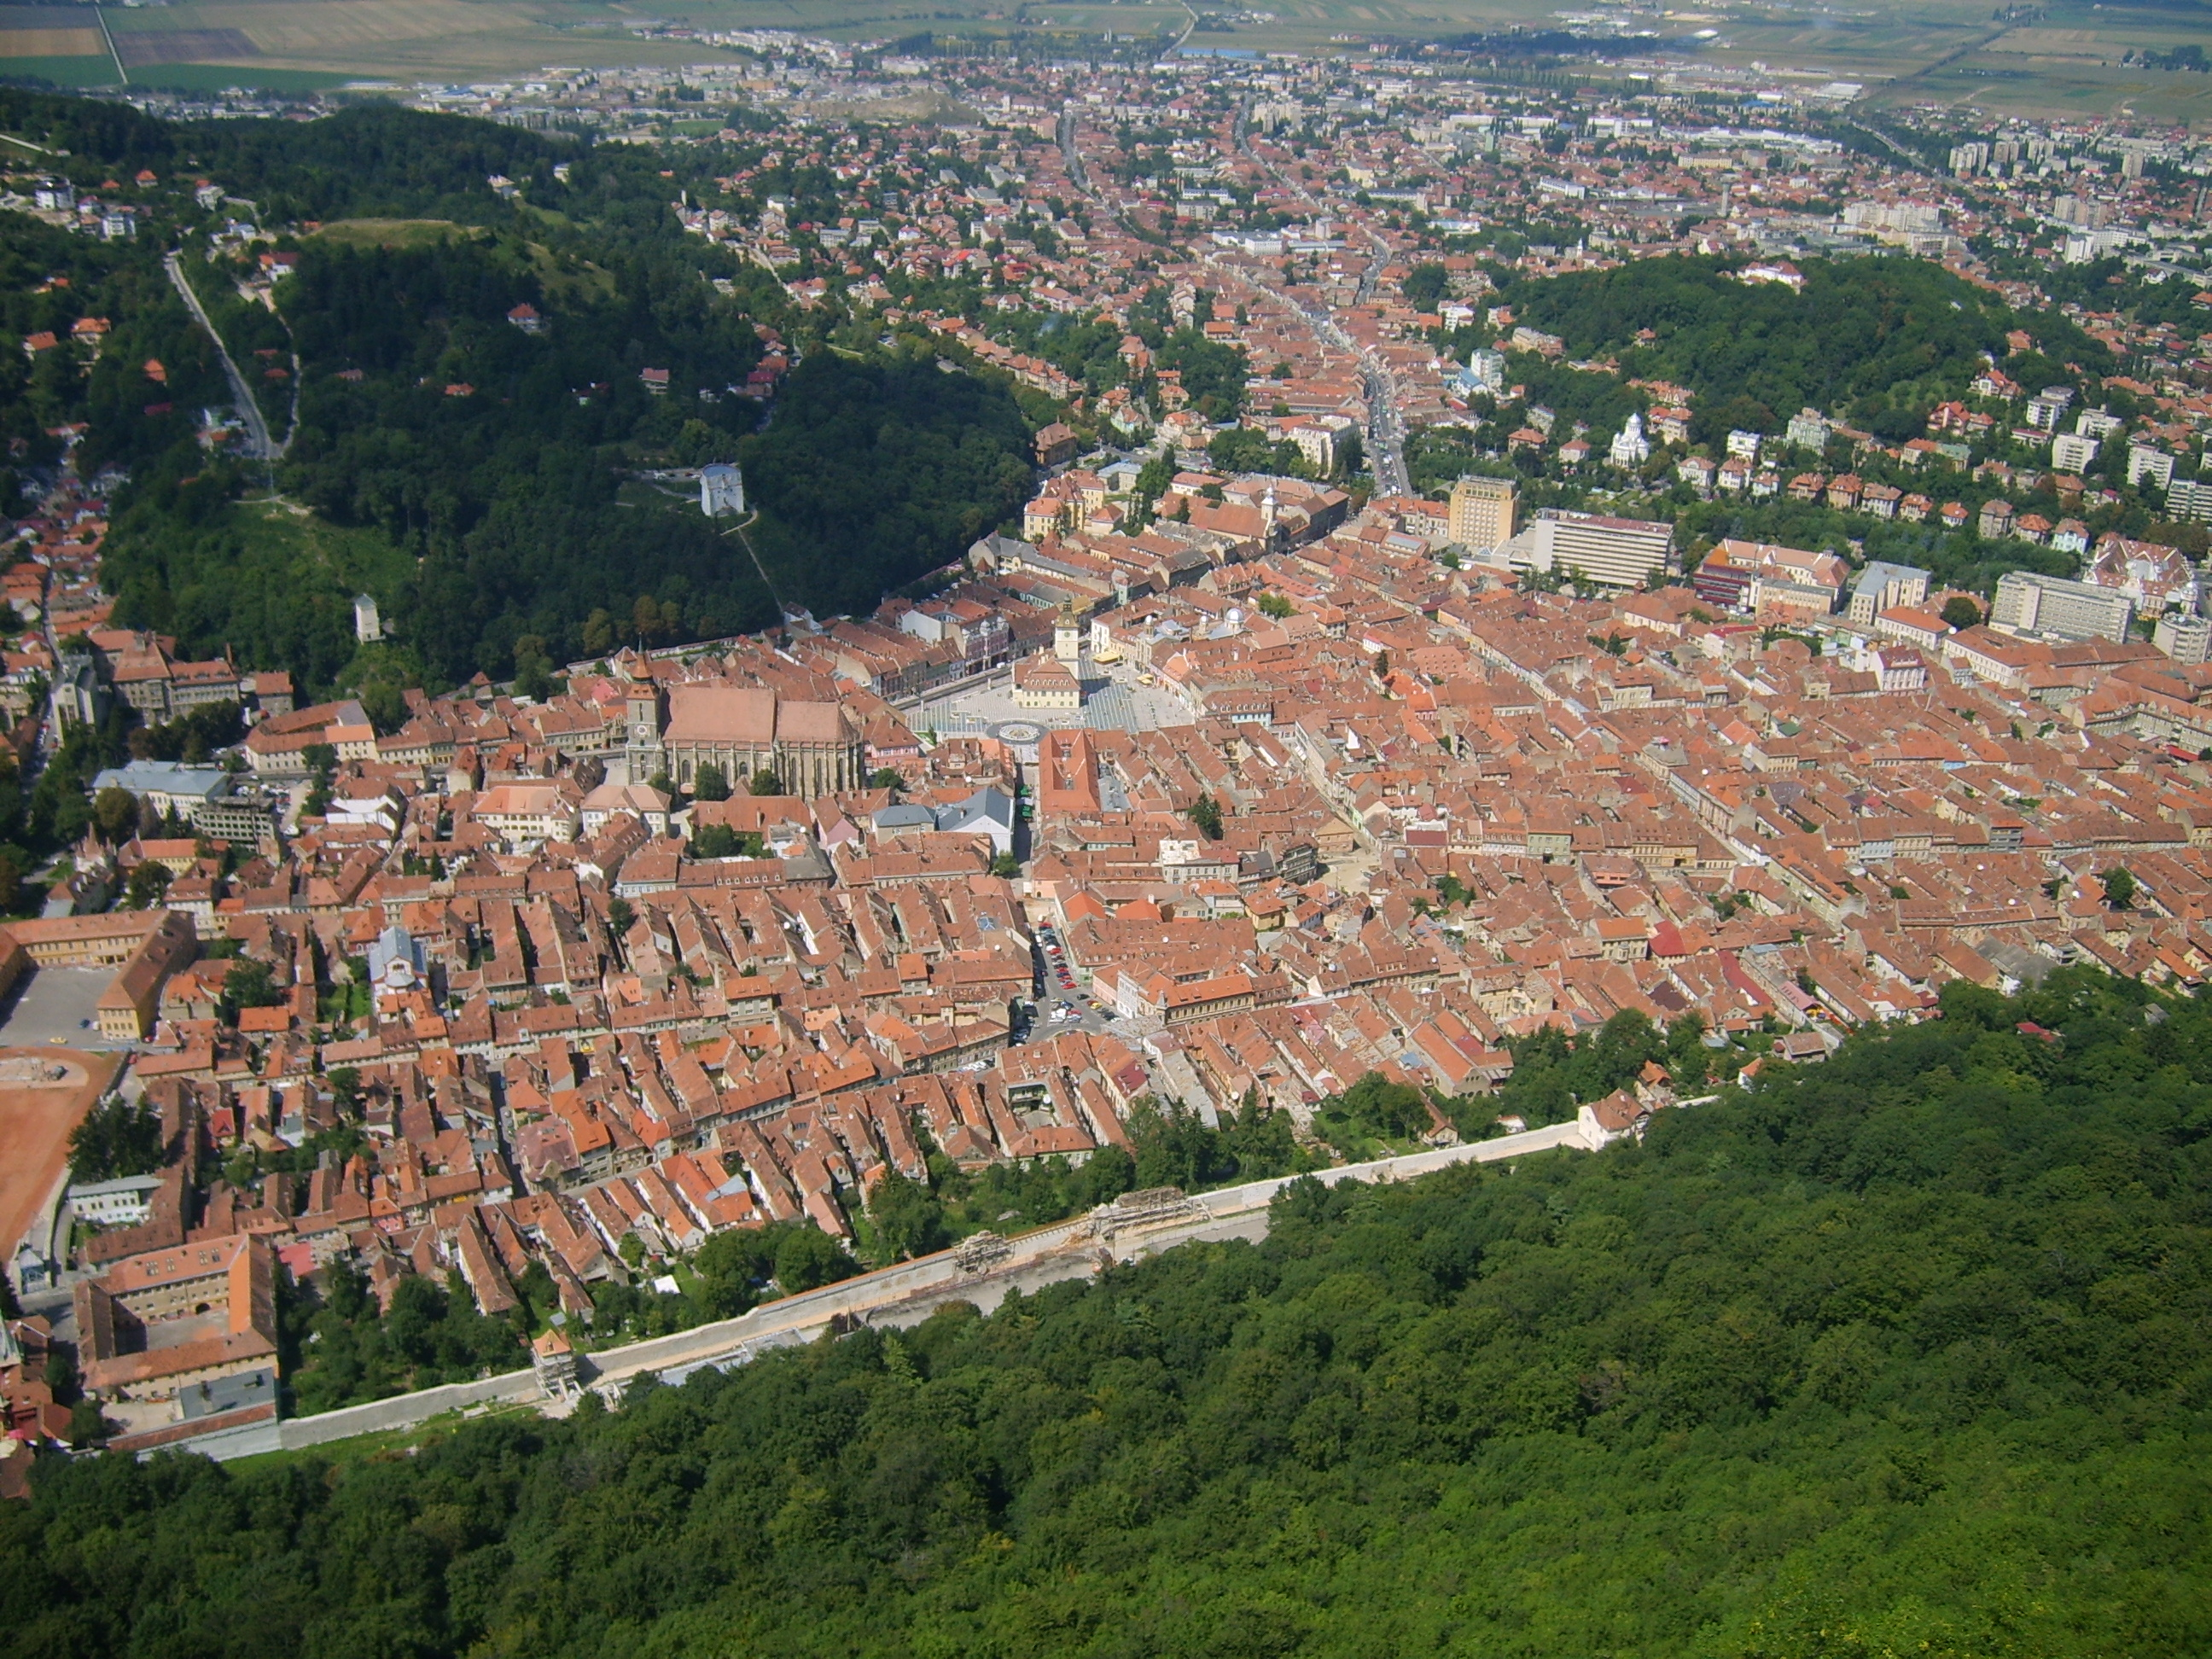 Brasov_view_from_the_top_of_the_hill